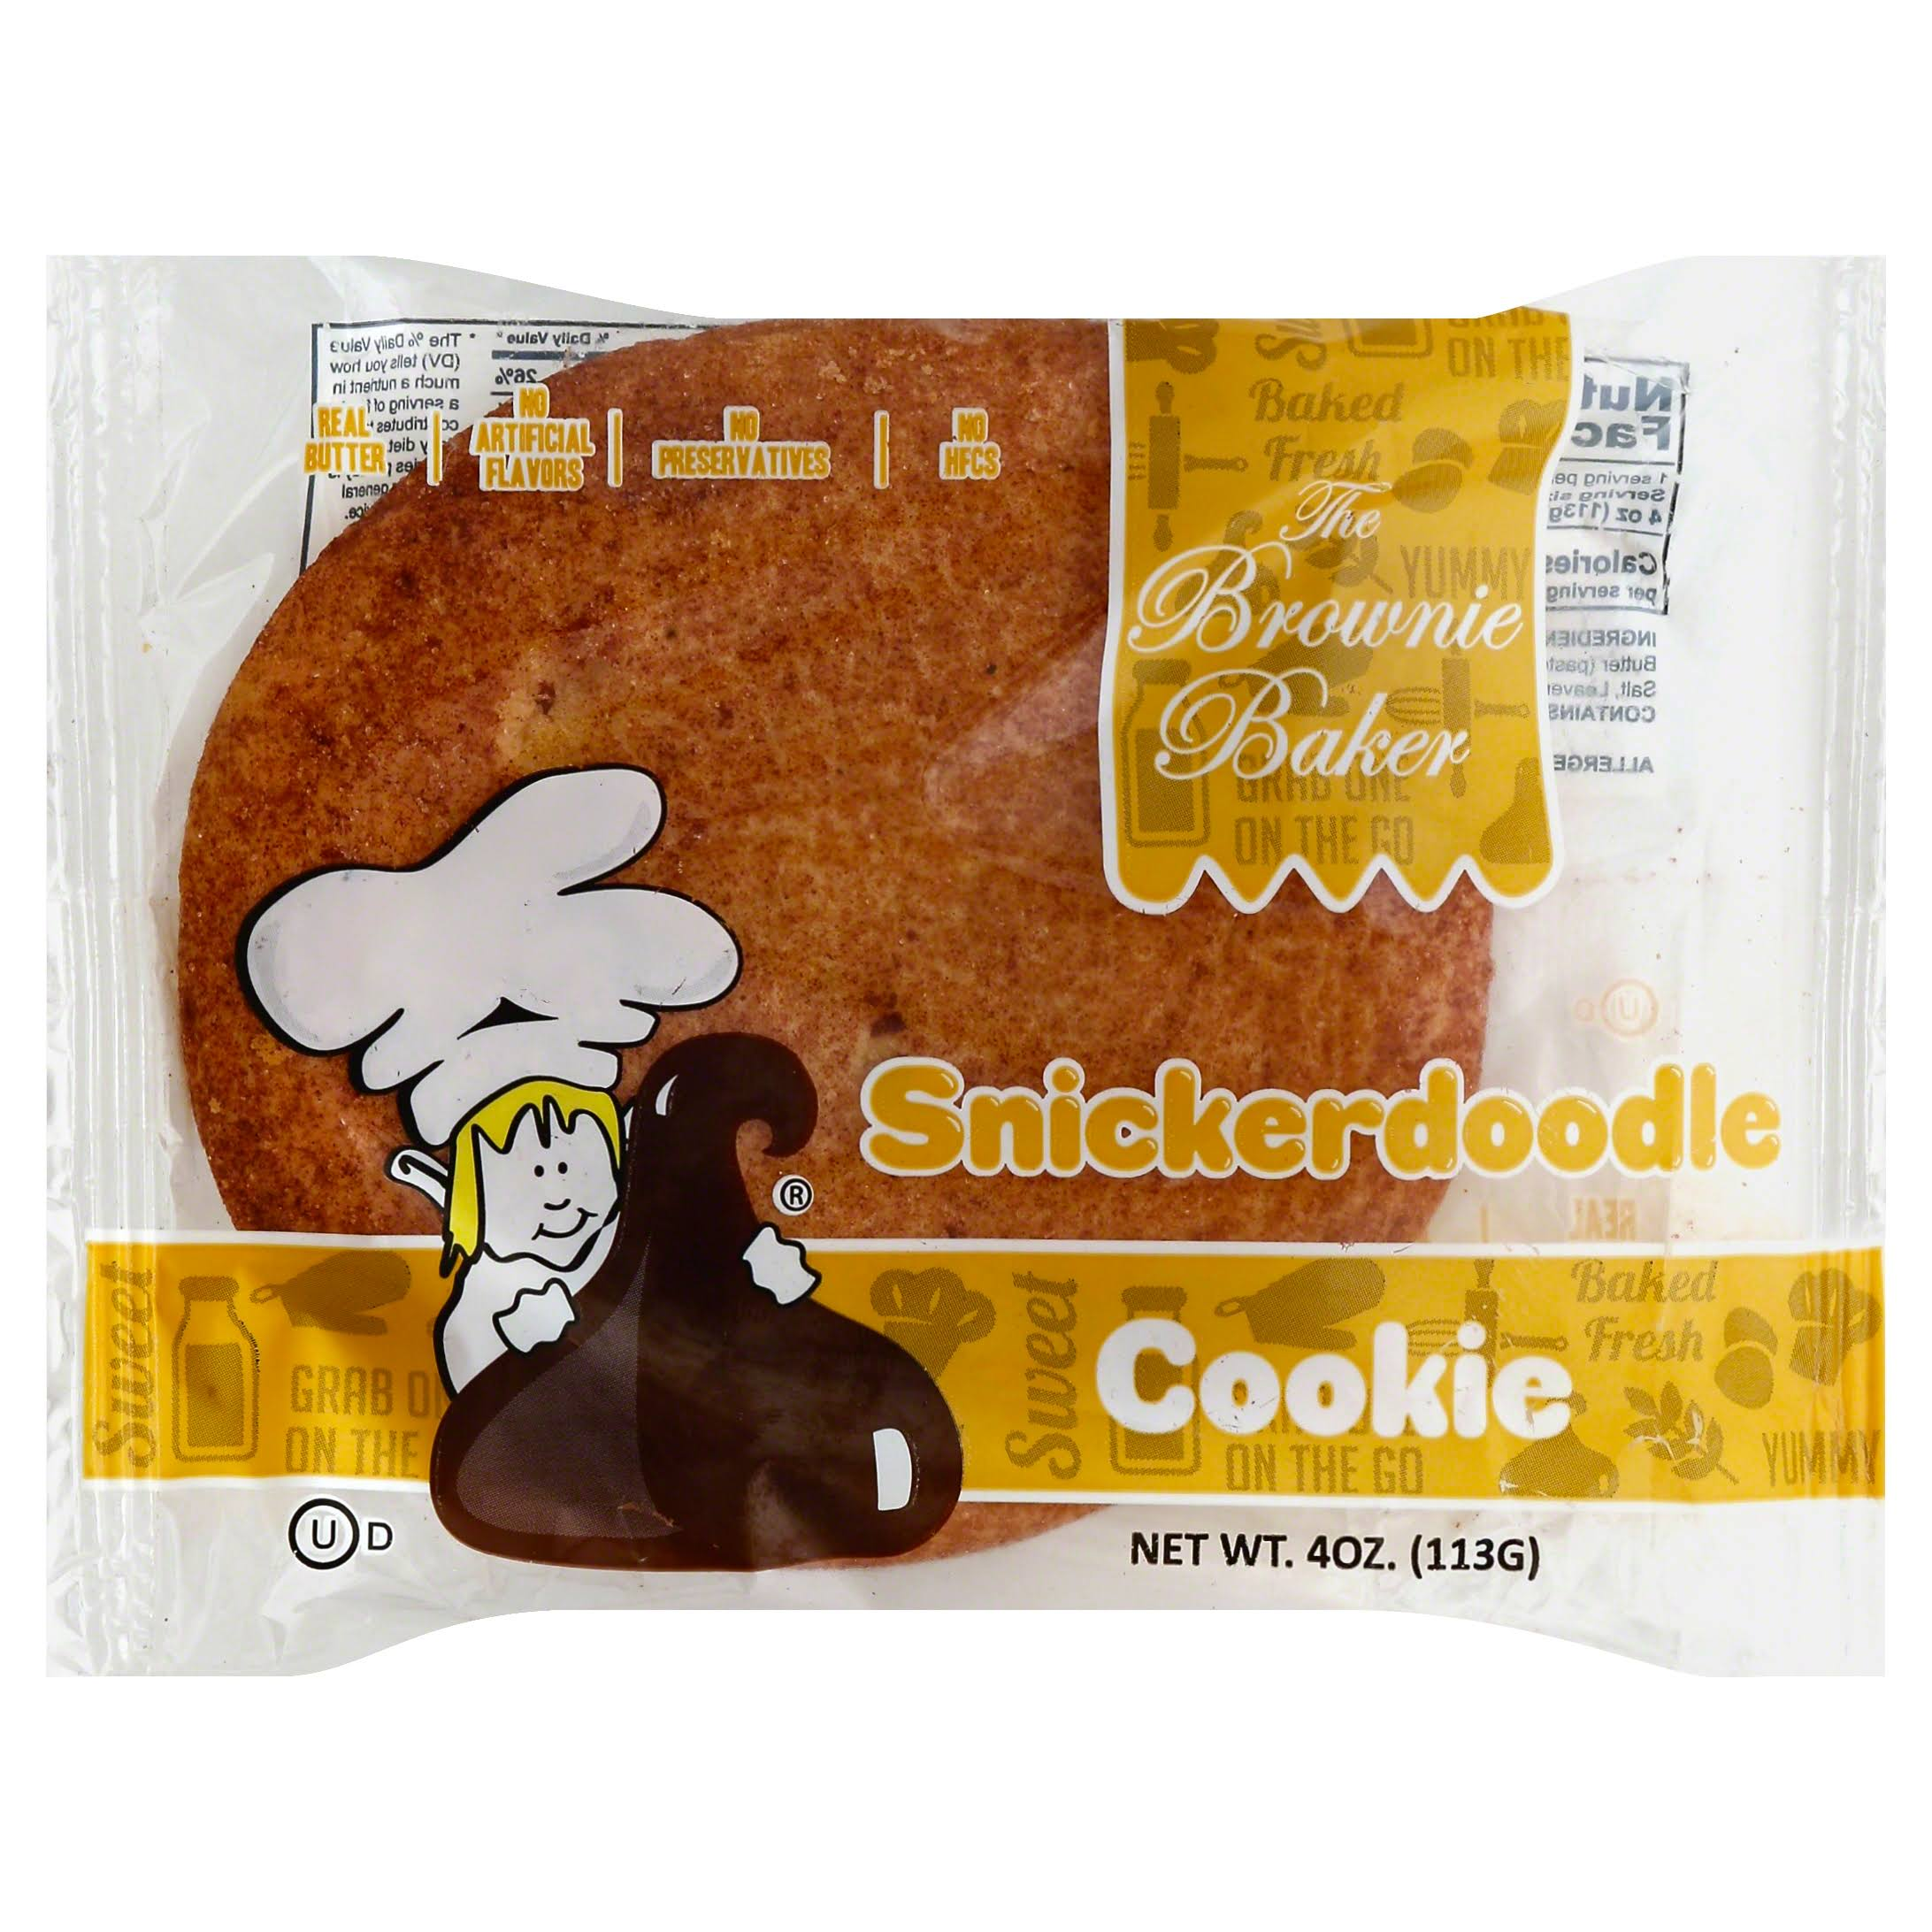 Brownie Baker Cookie, Snickerdoodle - 4 oz